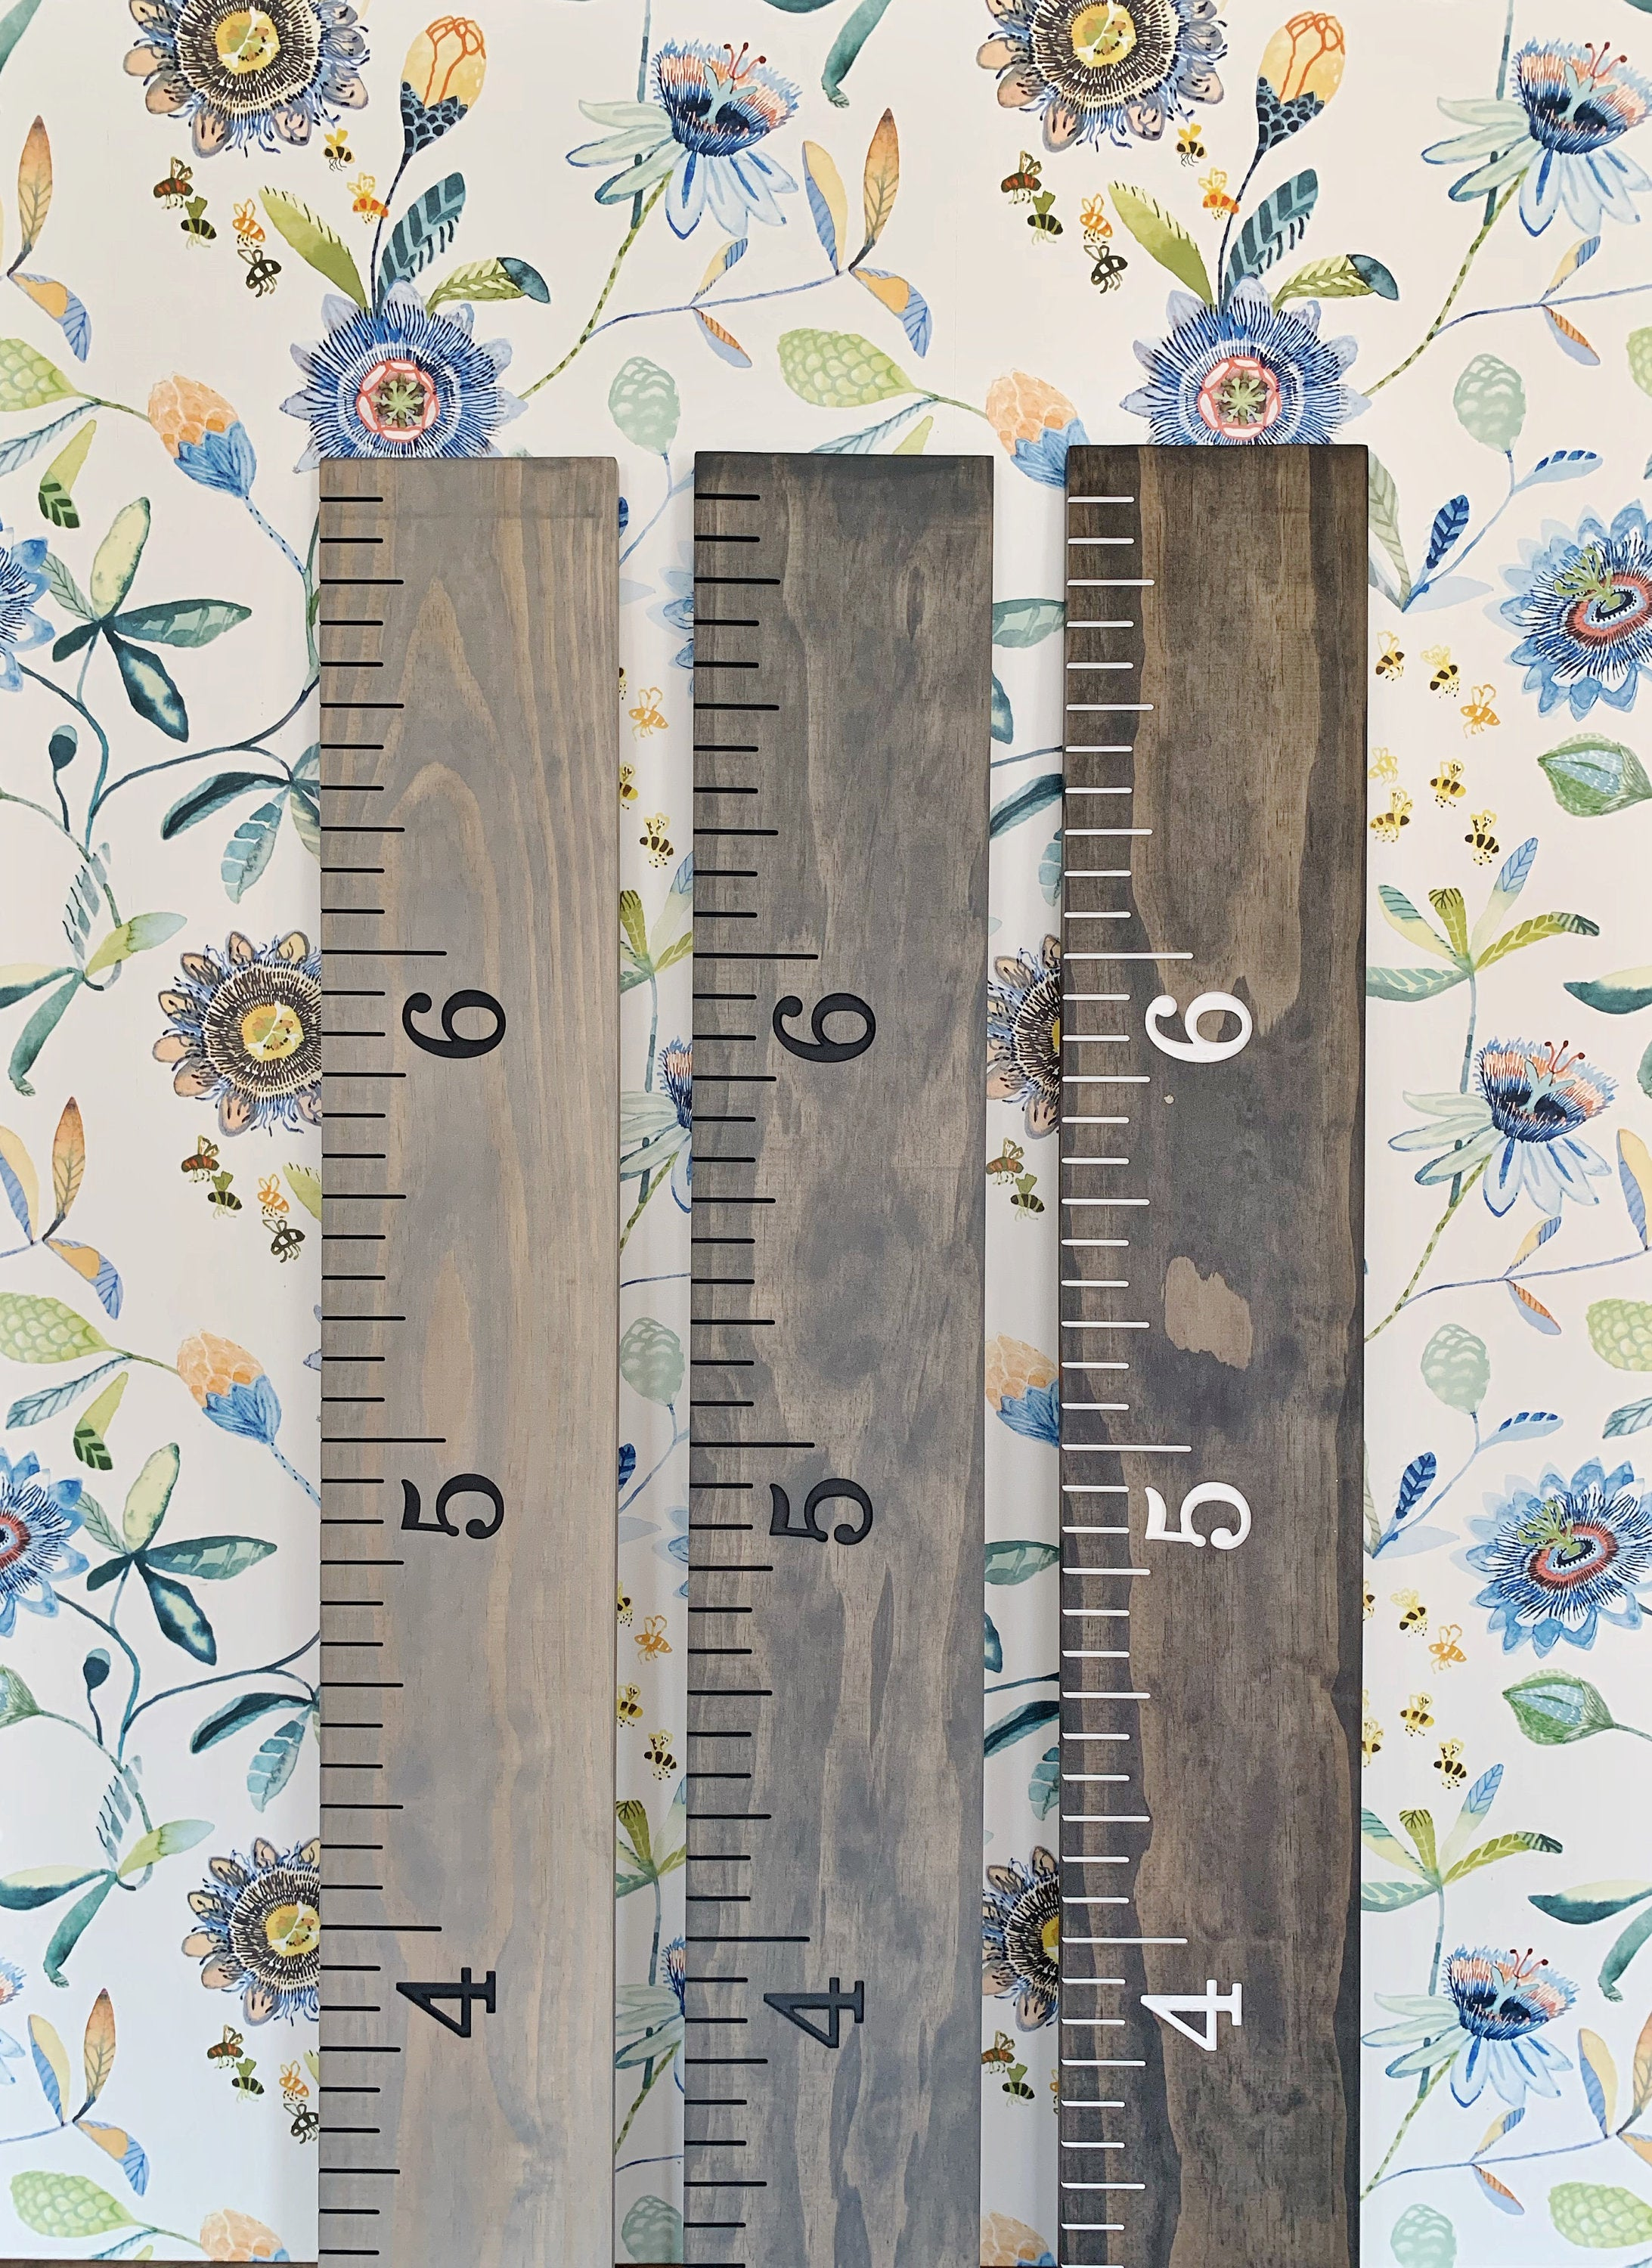 Carolina Edition : Engraved Growth Chart